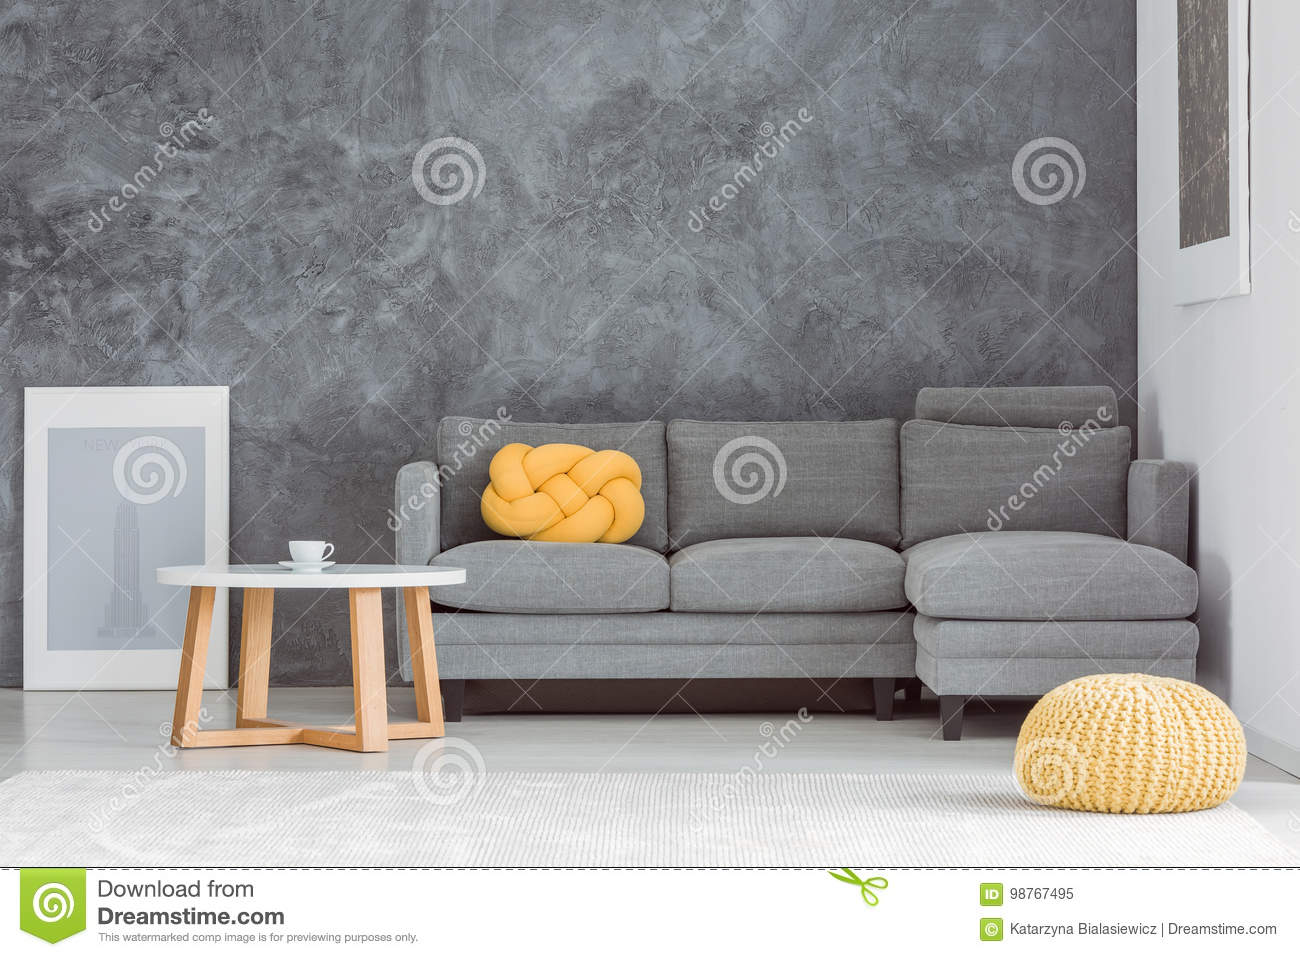 Yellow pouf in living room stock image. Image of flat - 98767495